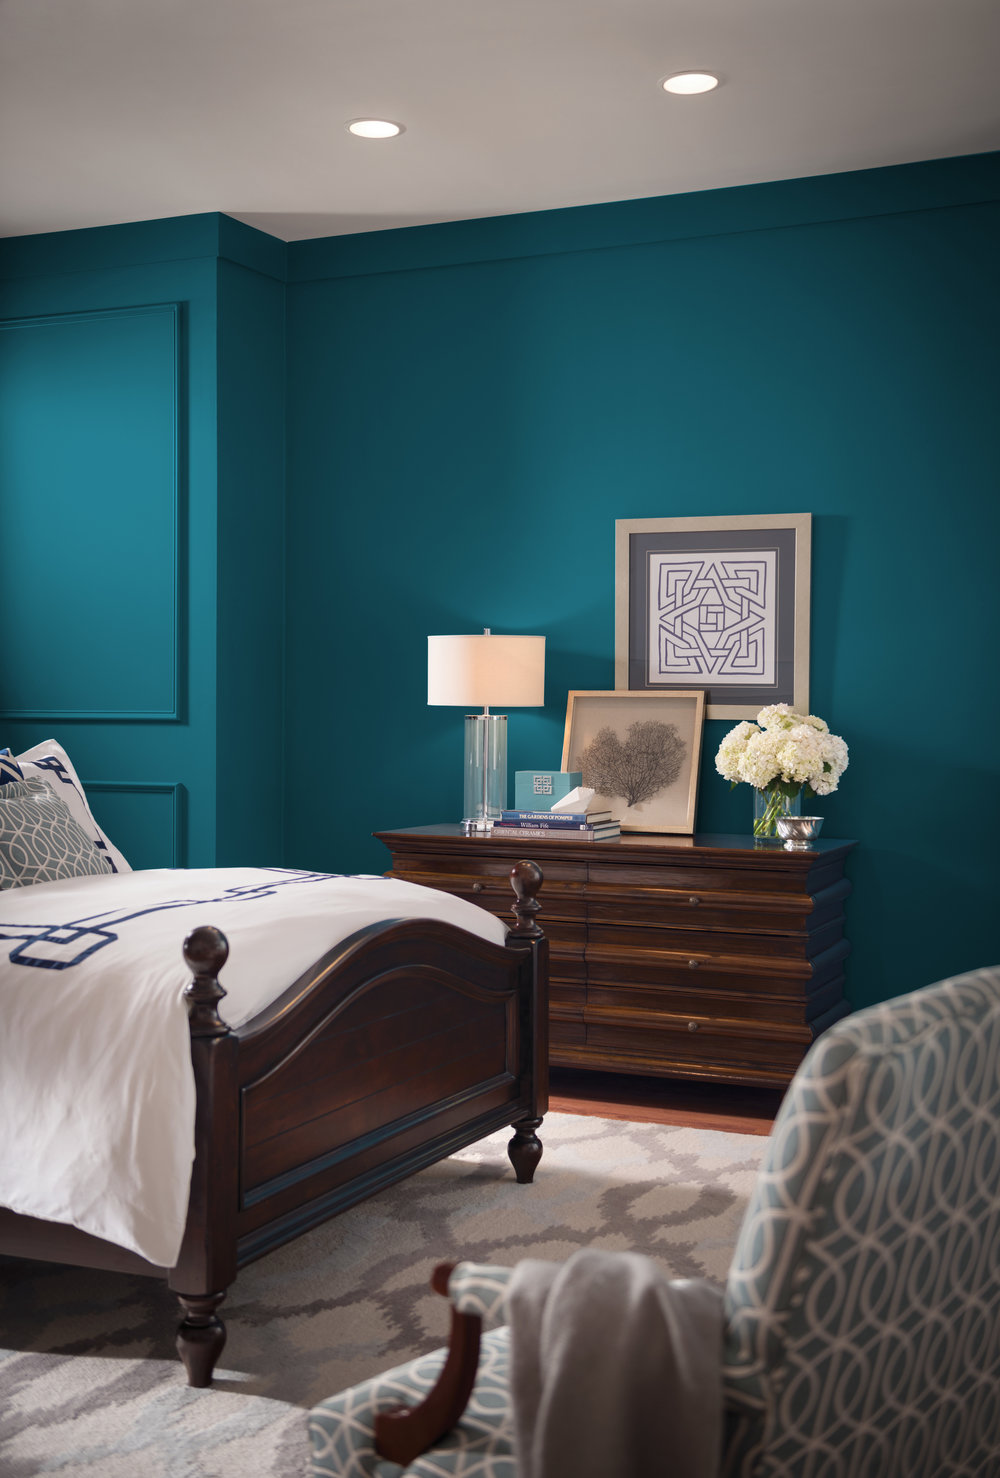 sherwin-williams_oceanside_6496_bedroom2-3.jpg